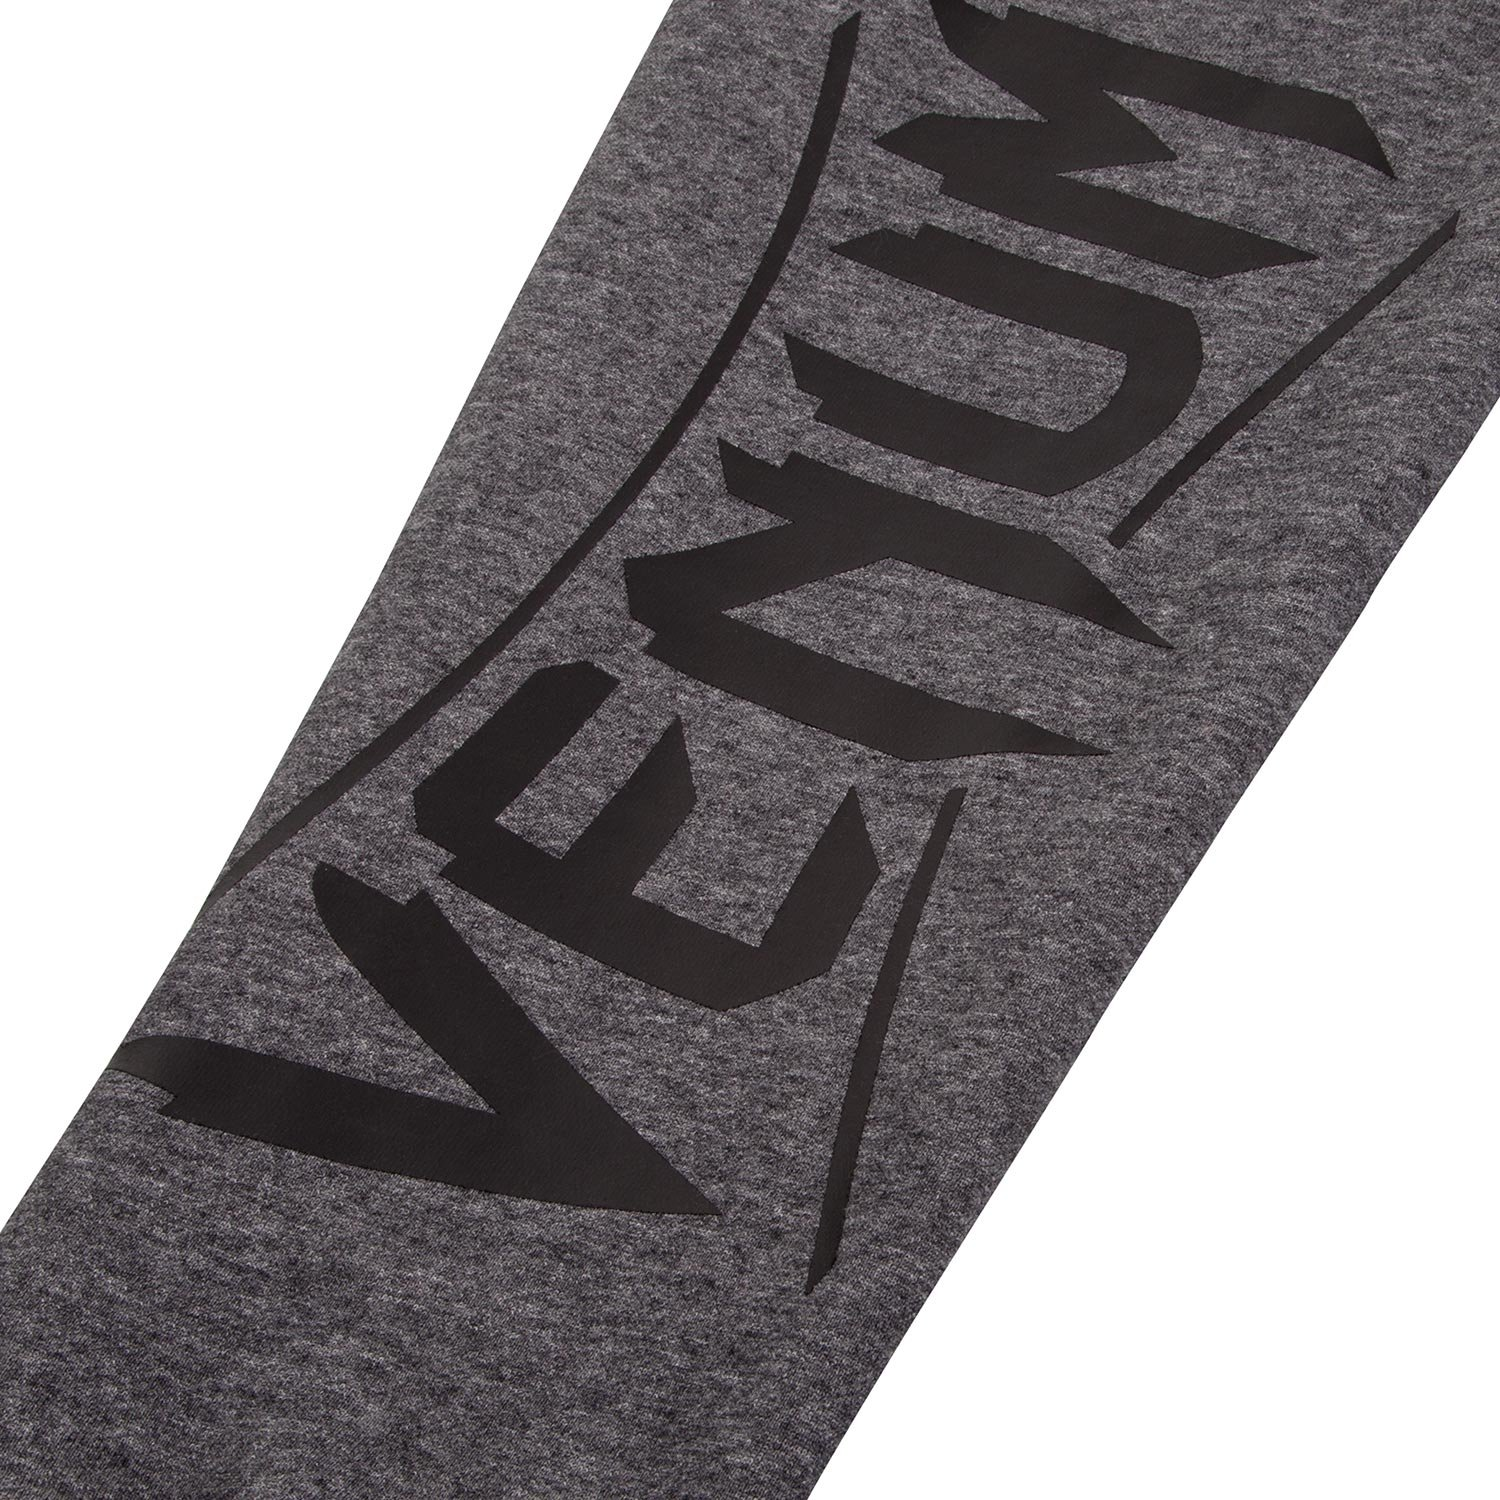 Venum Contender 2.0 Jogging Pants - Grey/Black - Medium by Venum (Image #6)